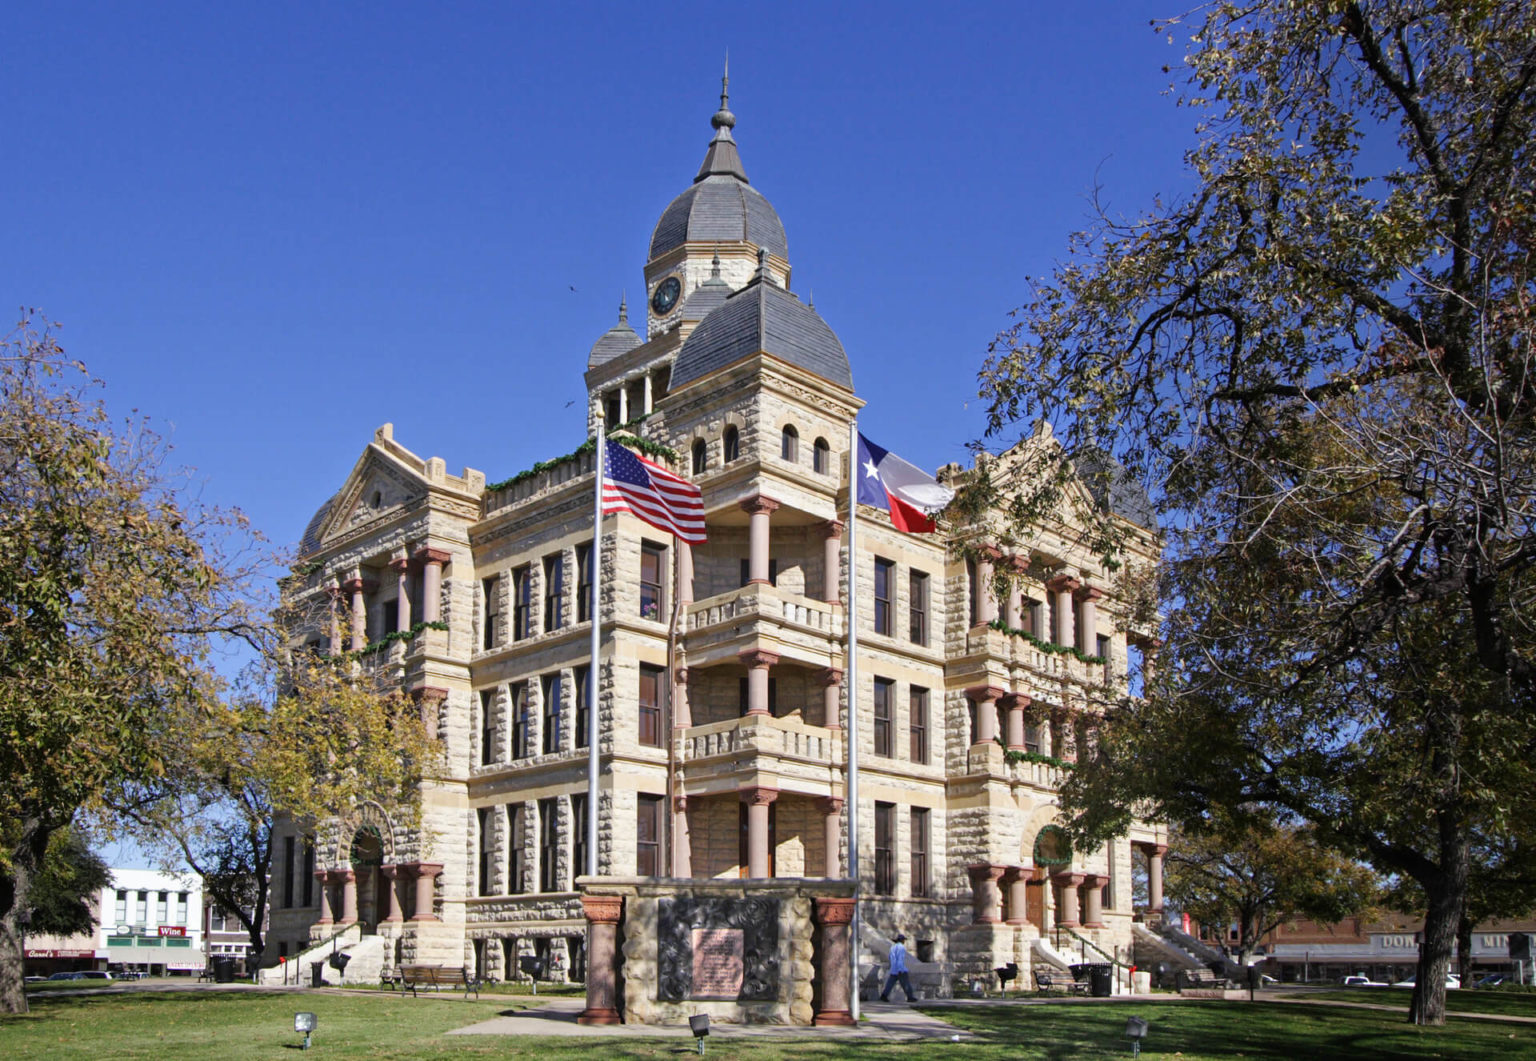 Image of Denton city for Denton Immigration lawyers